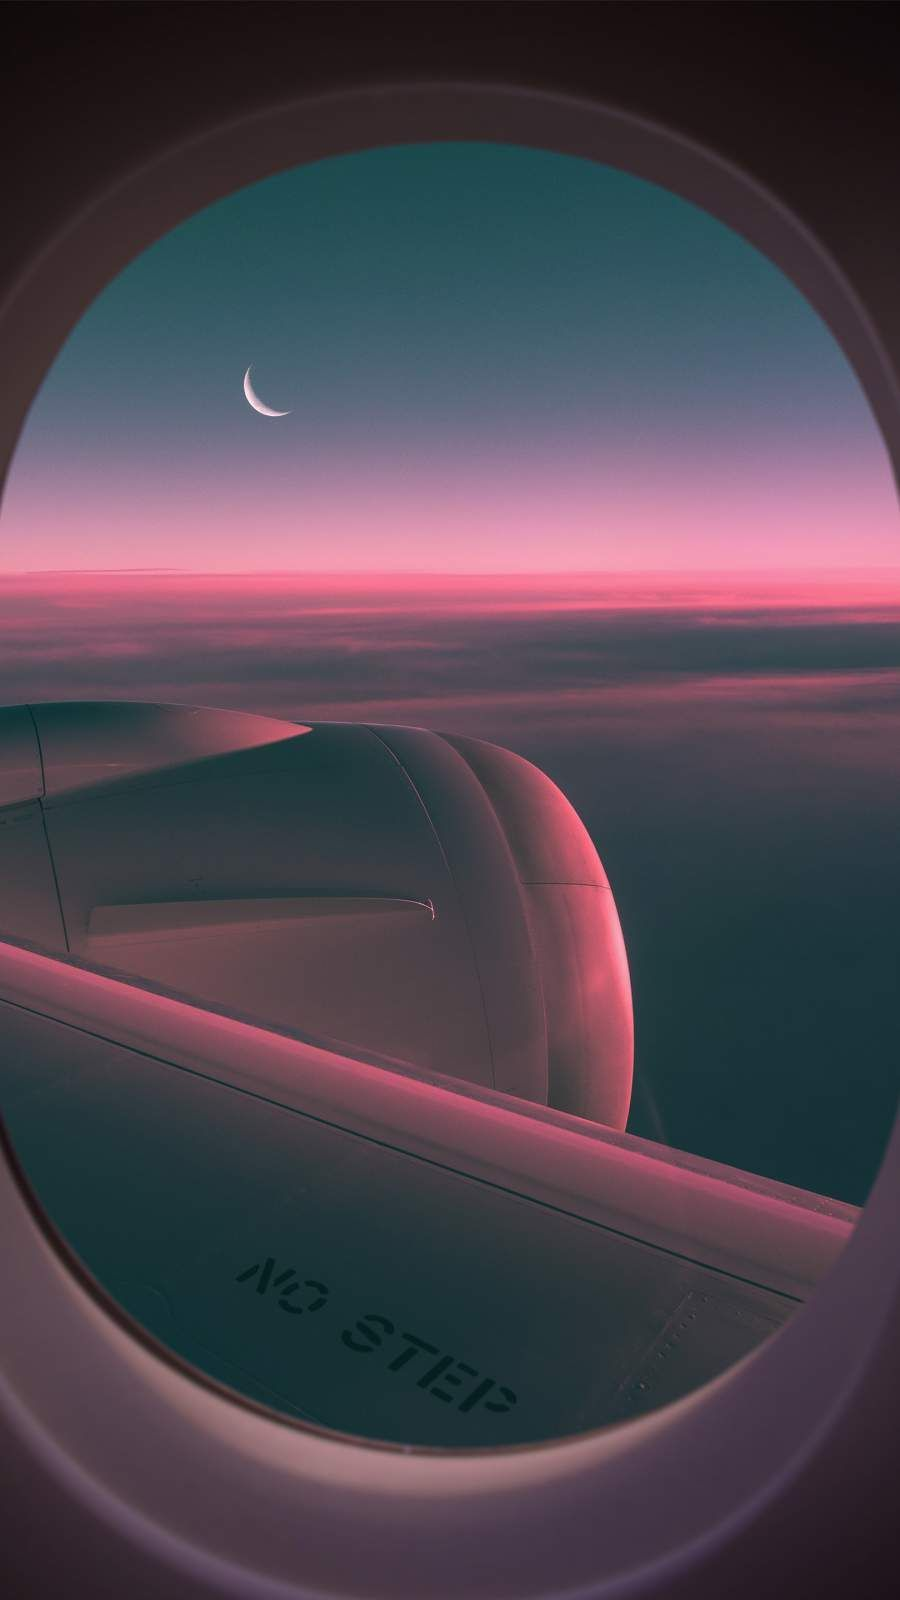 Airplane Window iPhone Wallpaper #darkiphonewallpaper Airplane Window iPhone Wallpaper #darkiphonewallpaper